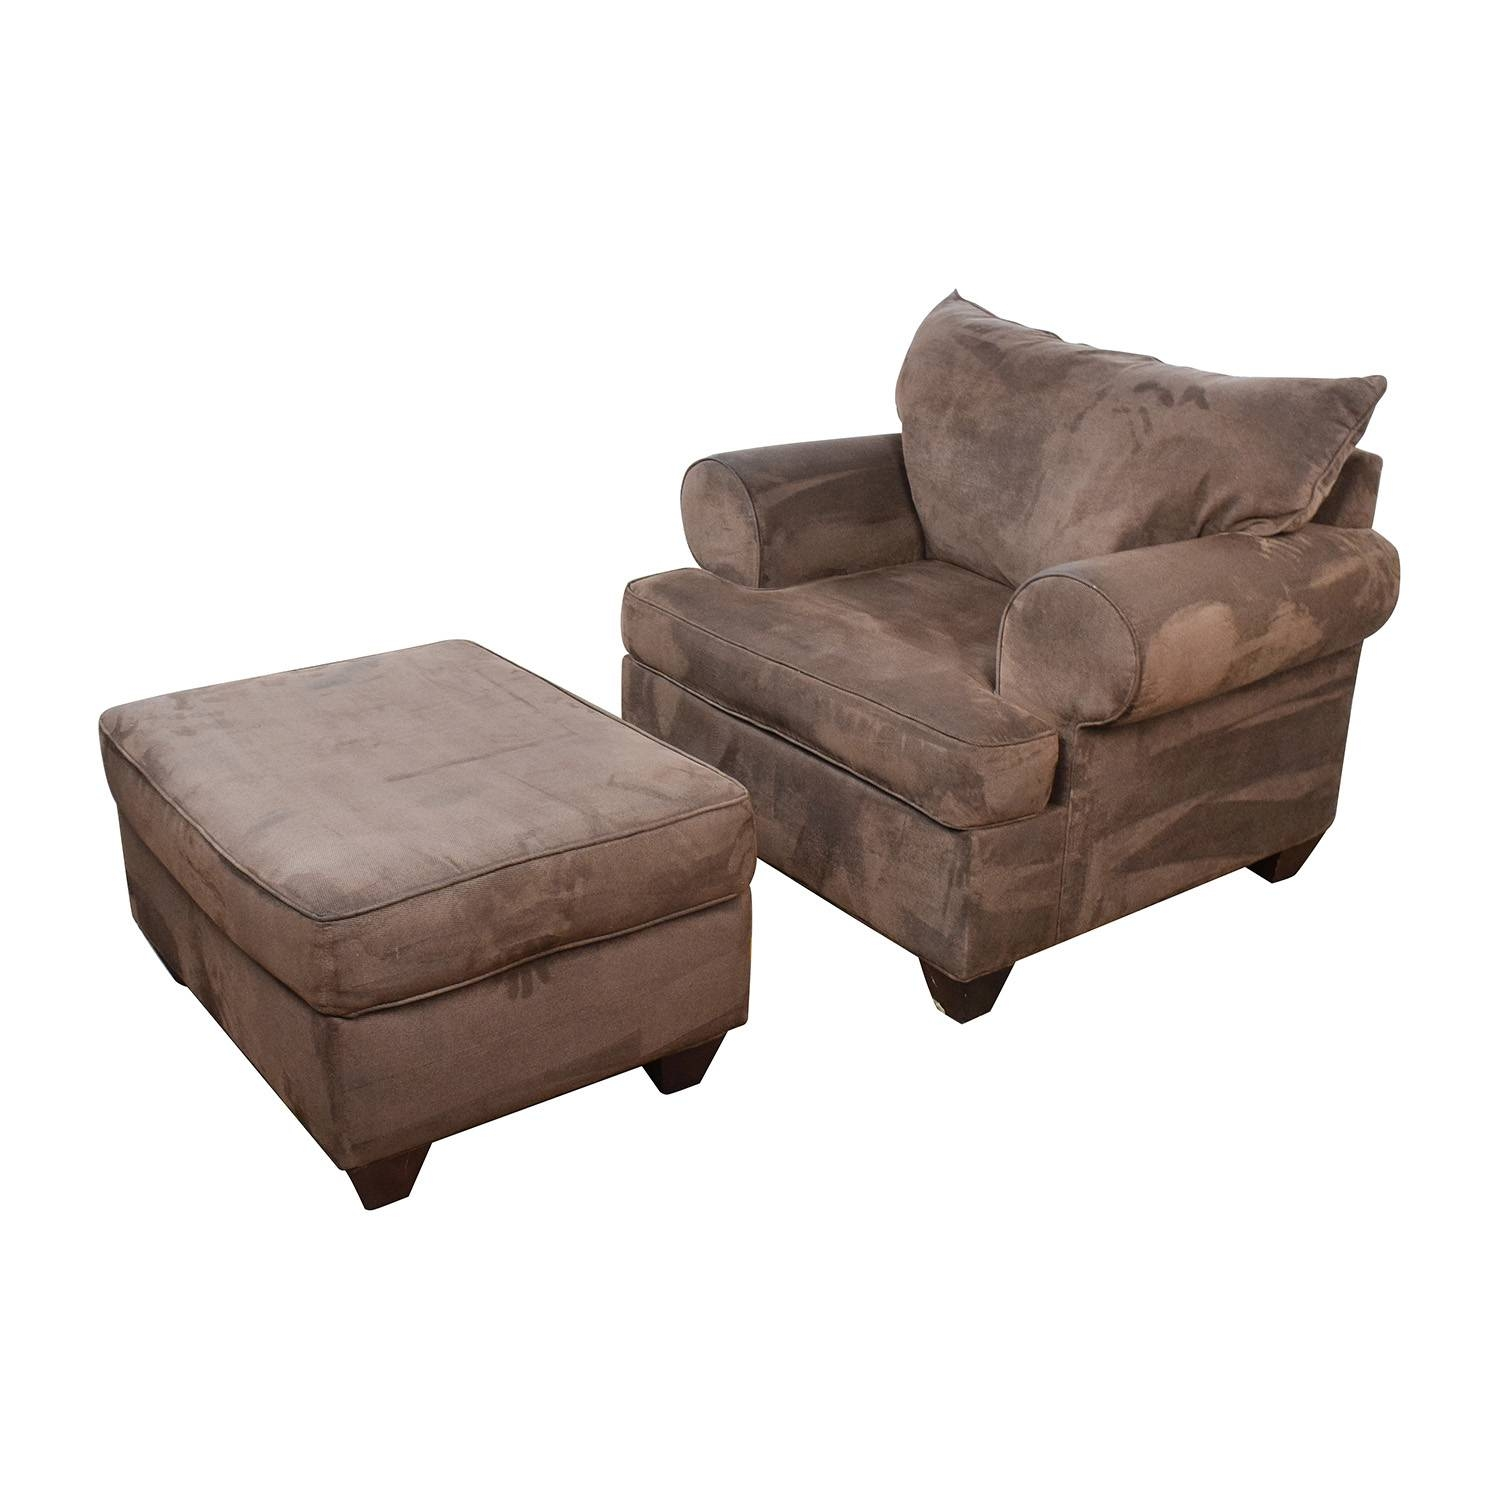 67% Off - Dark Brown Sofa Chair With Ottoman / Chairs in Sofa Chairs (Image 6 of 30)